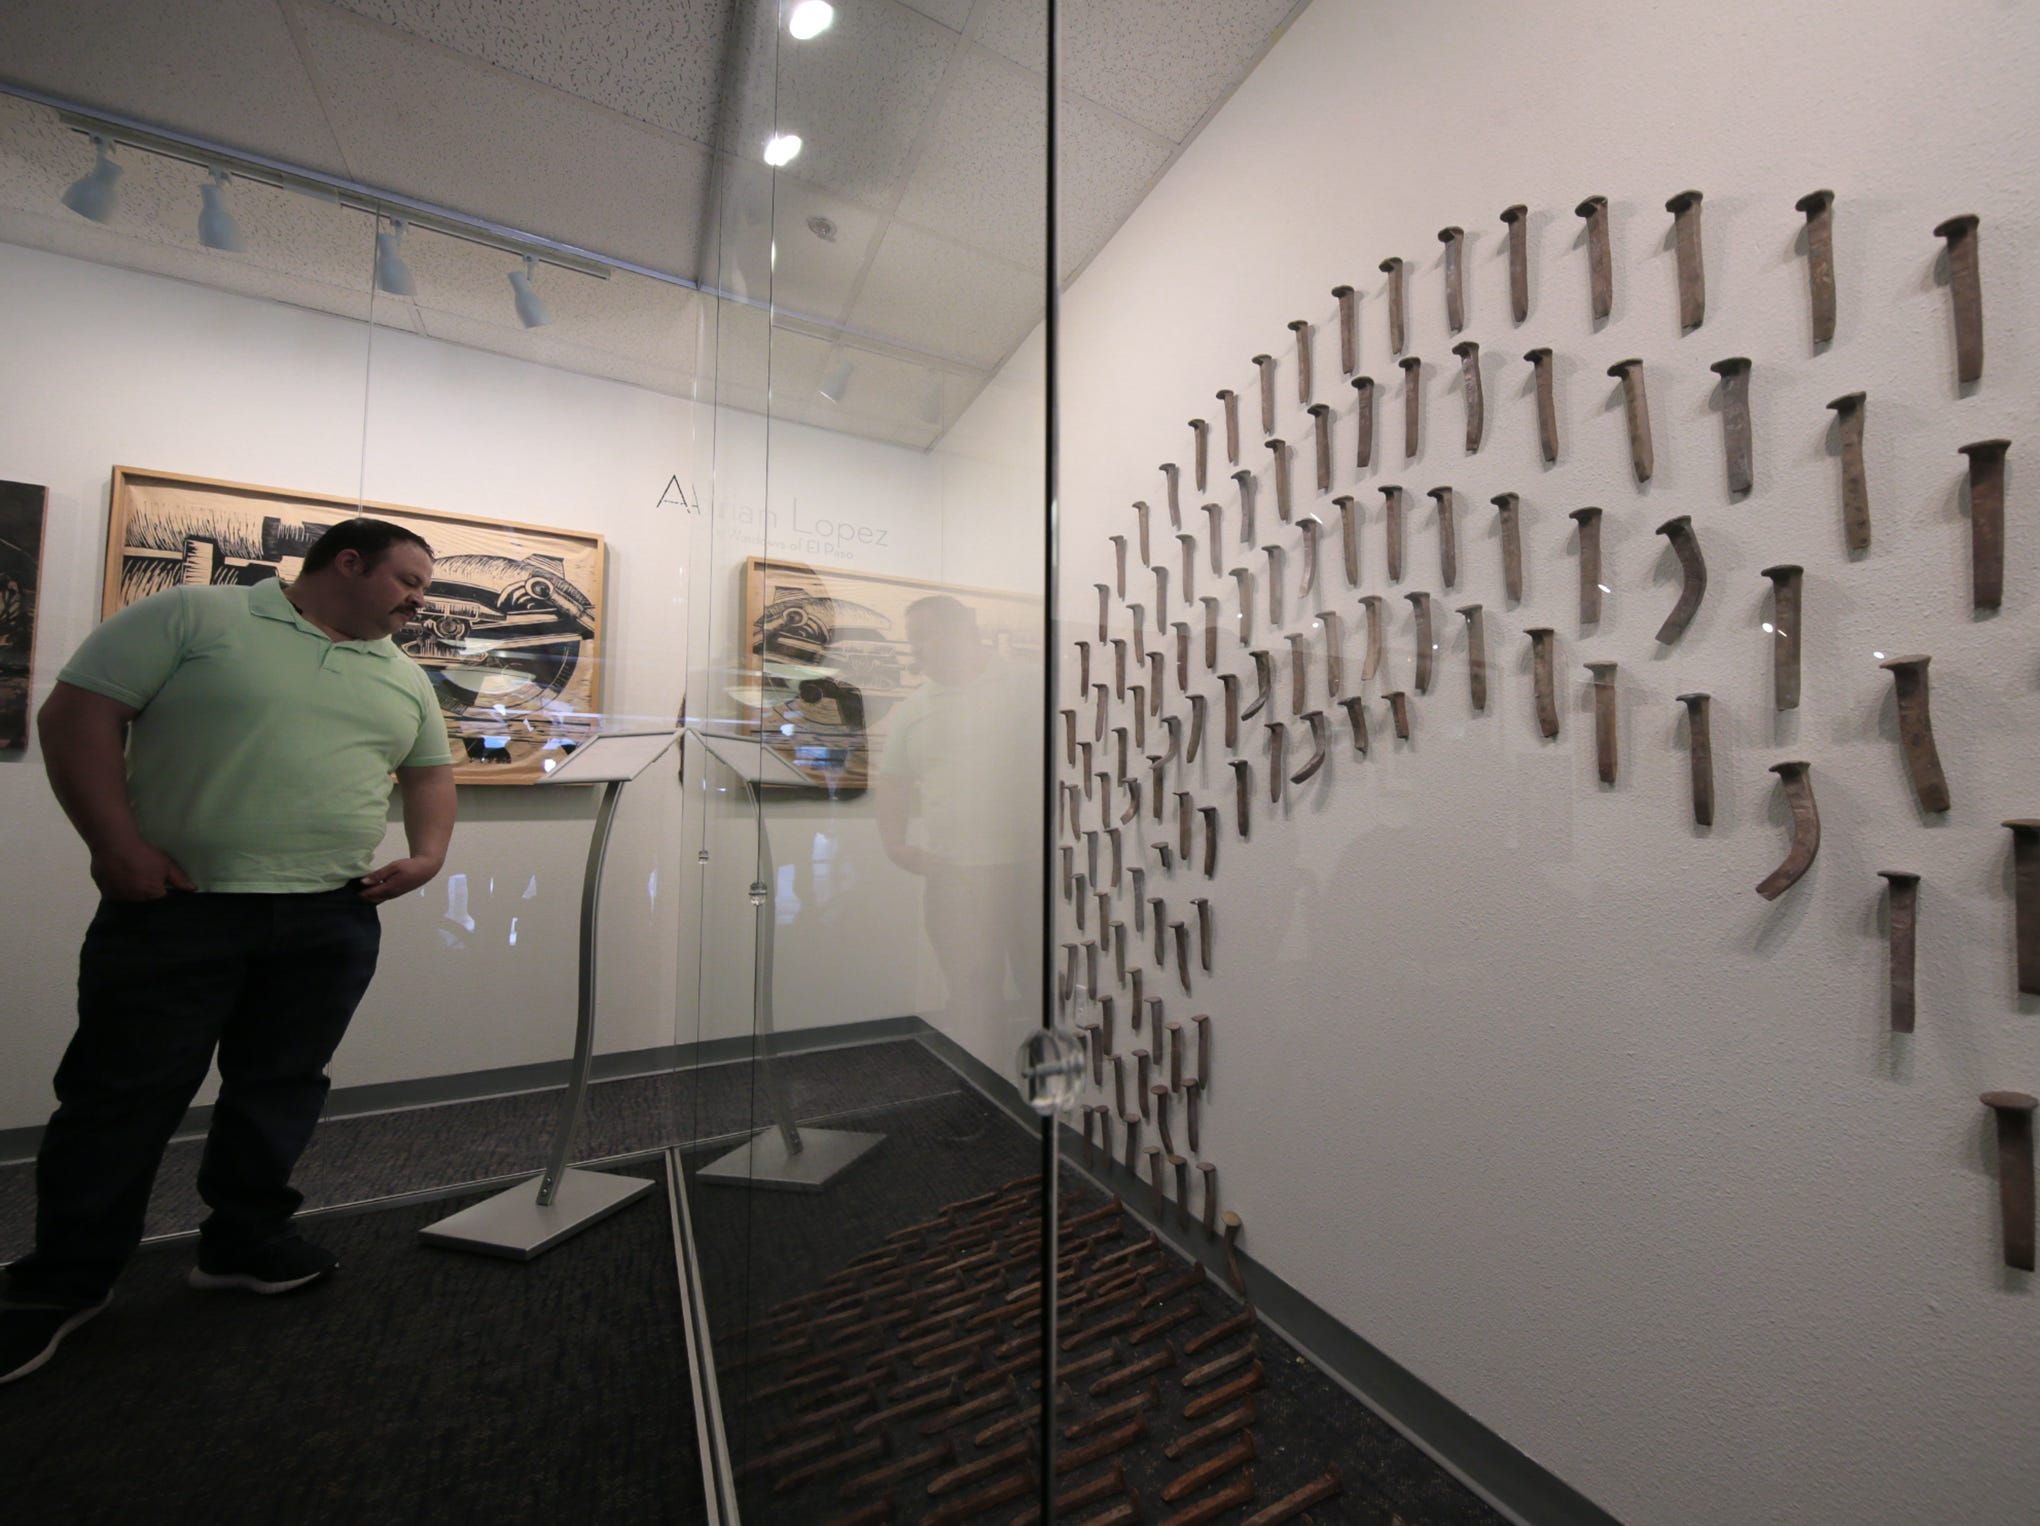 The Art Windows of El Paso at the El Paso International Airport held a ribbon cutting for an exhibit by artists Adrian Lopez and Ramiro Ordonez.